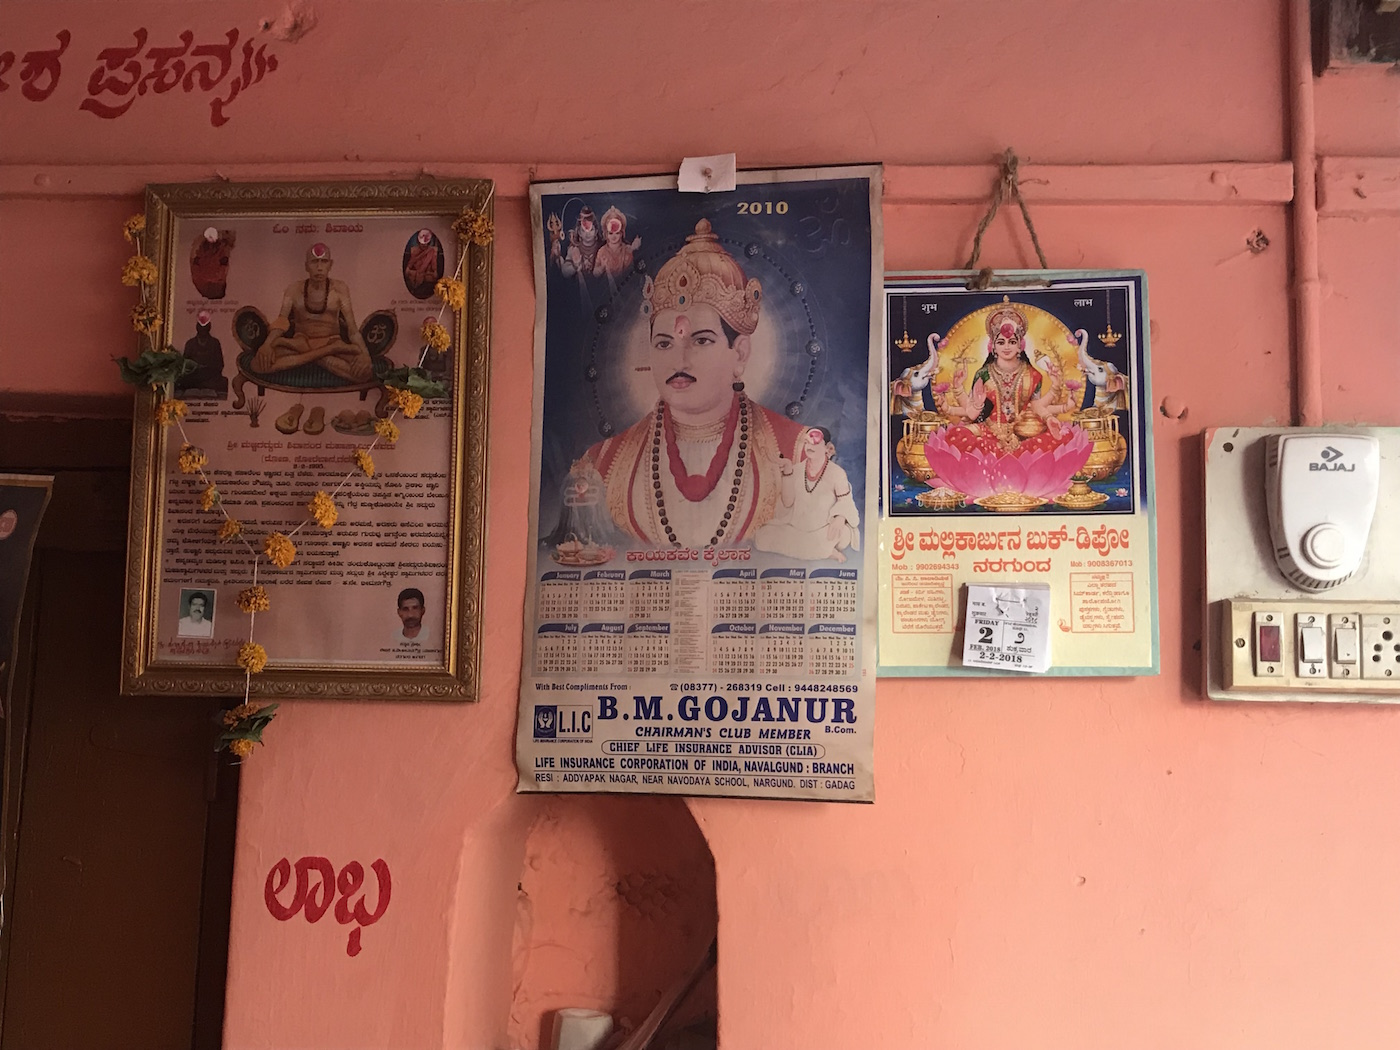 Basava, the 12th century social reformer, depicted on a wall calendar next to the Hindu goddess Laxmi at a Lingayat-owned shop in Gadag district.